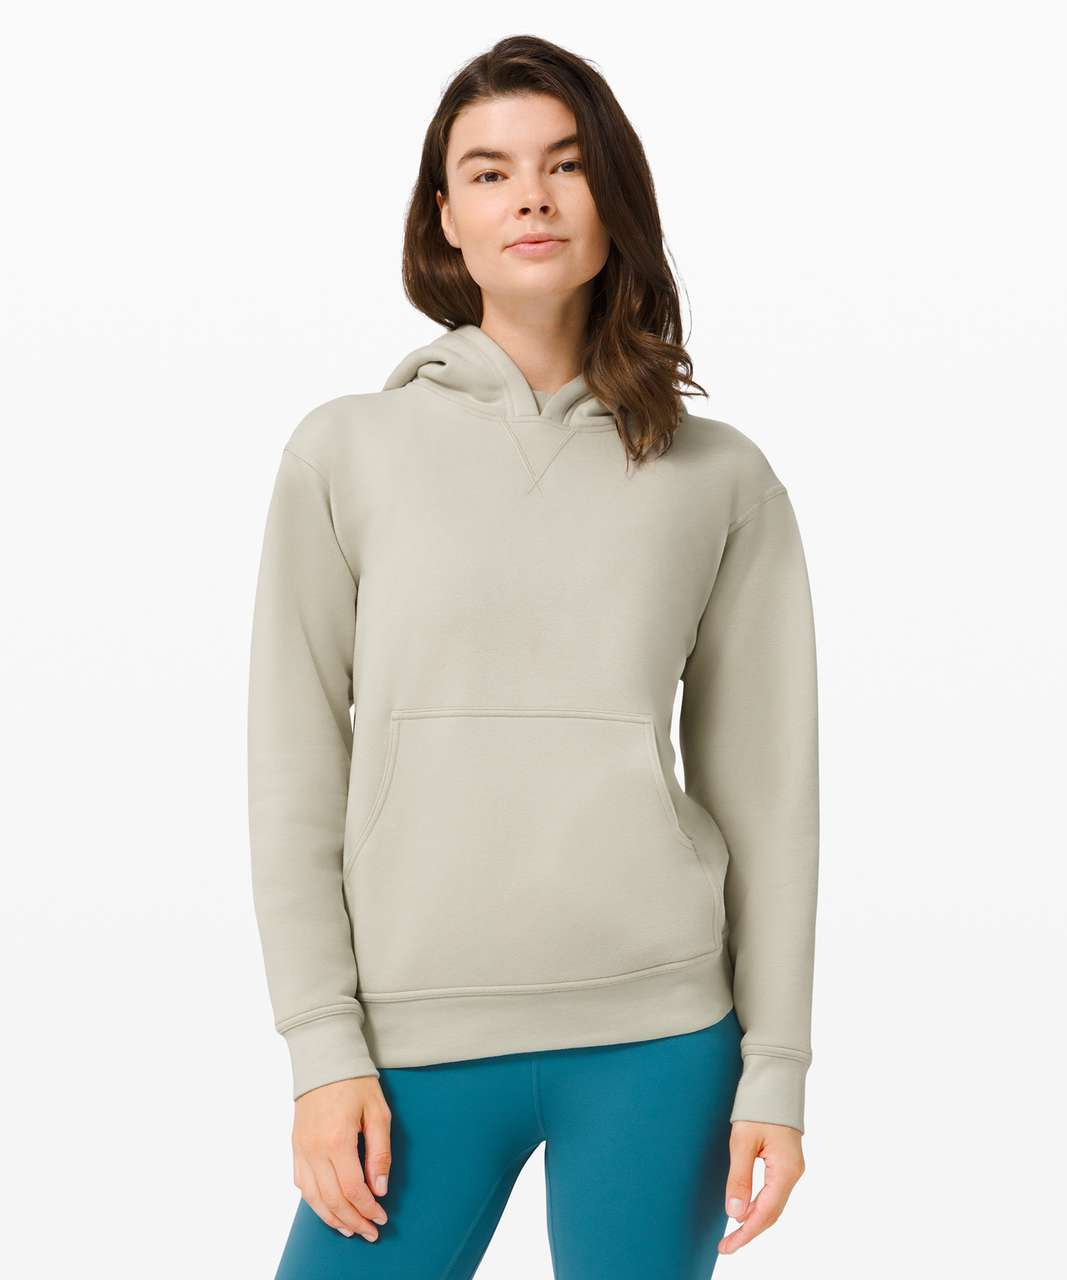 Lululemon All Yours Hoodie *Fleece - Light Sage